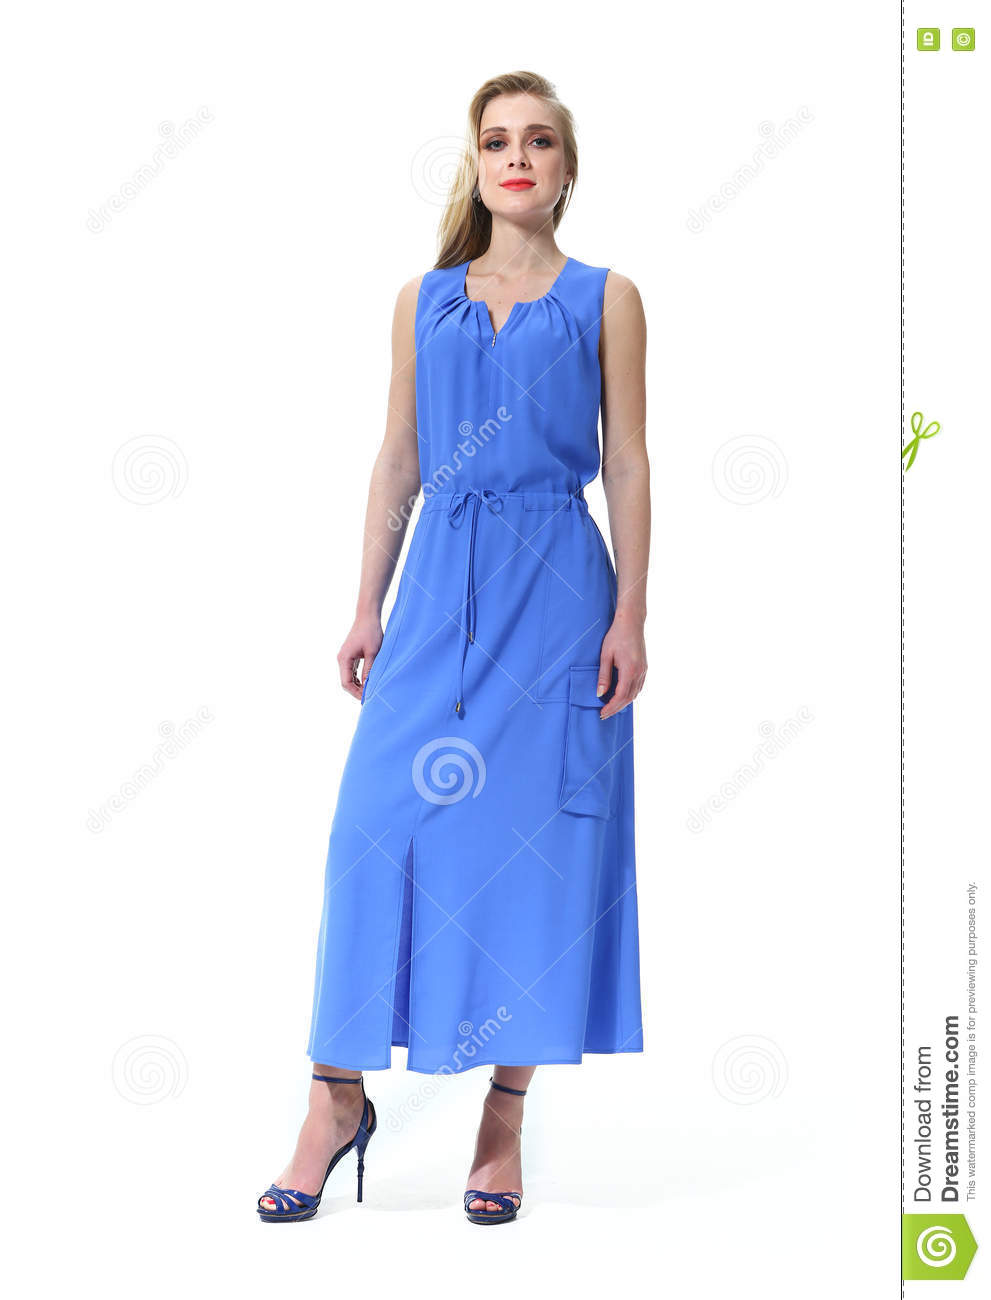 75d354ceed68eb Blond woman with straight hair style in summer long bluse sleeveless dress  high heel shoes going full body length isolated on white